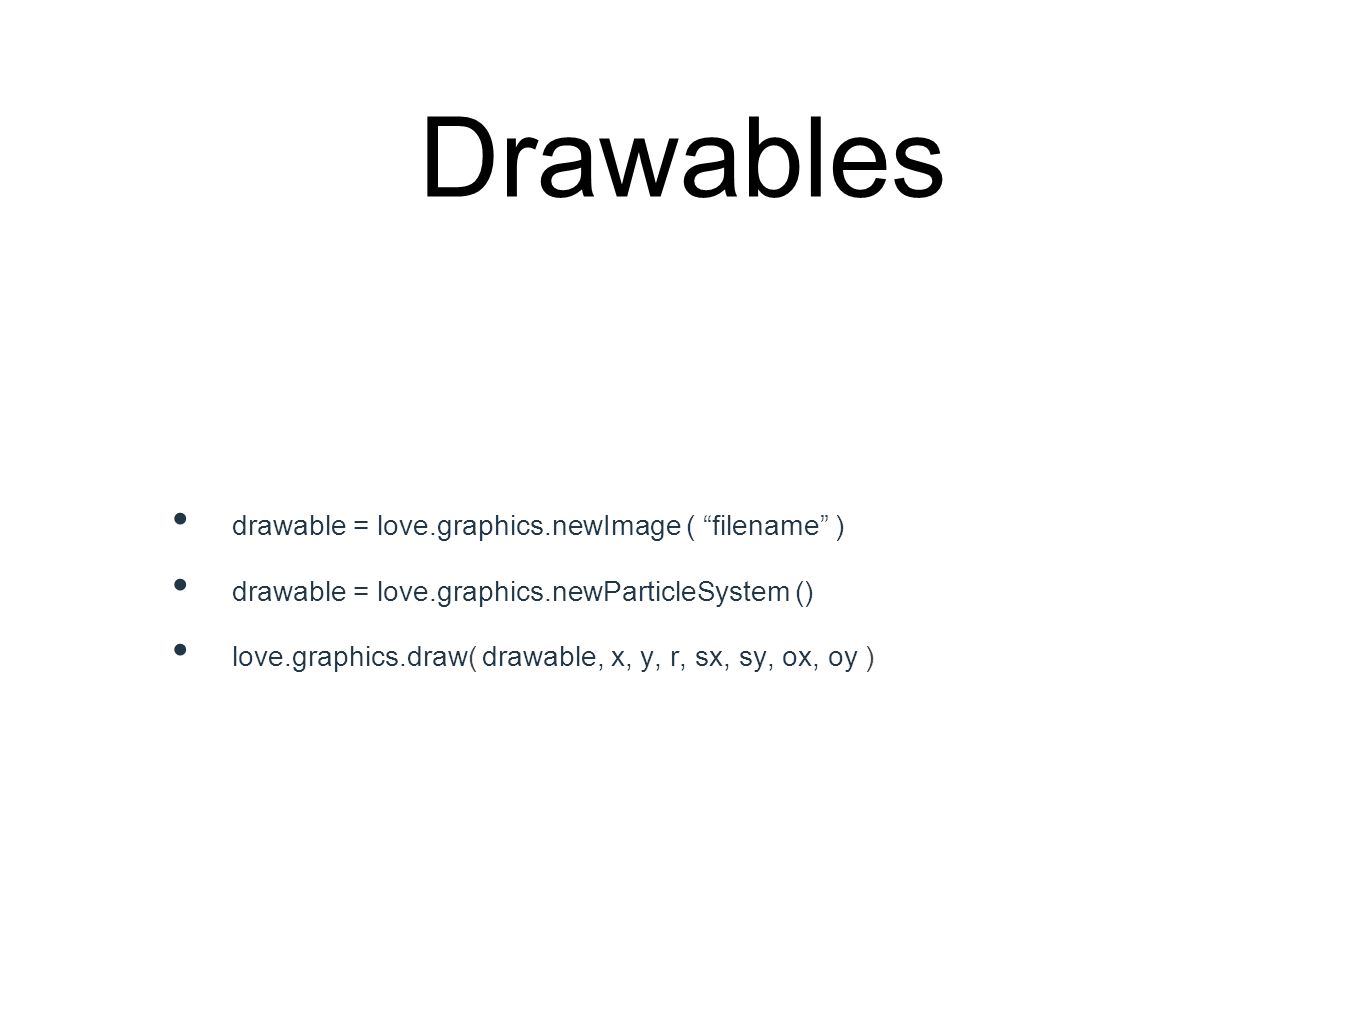 Drawables drawable = love.graphics.newImage ( filename ) drawable = love.graphics.newParticleSystem () love.graphics.draw( drawable, x, y, r, sx, sy, ox, oy )